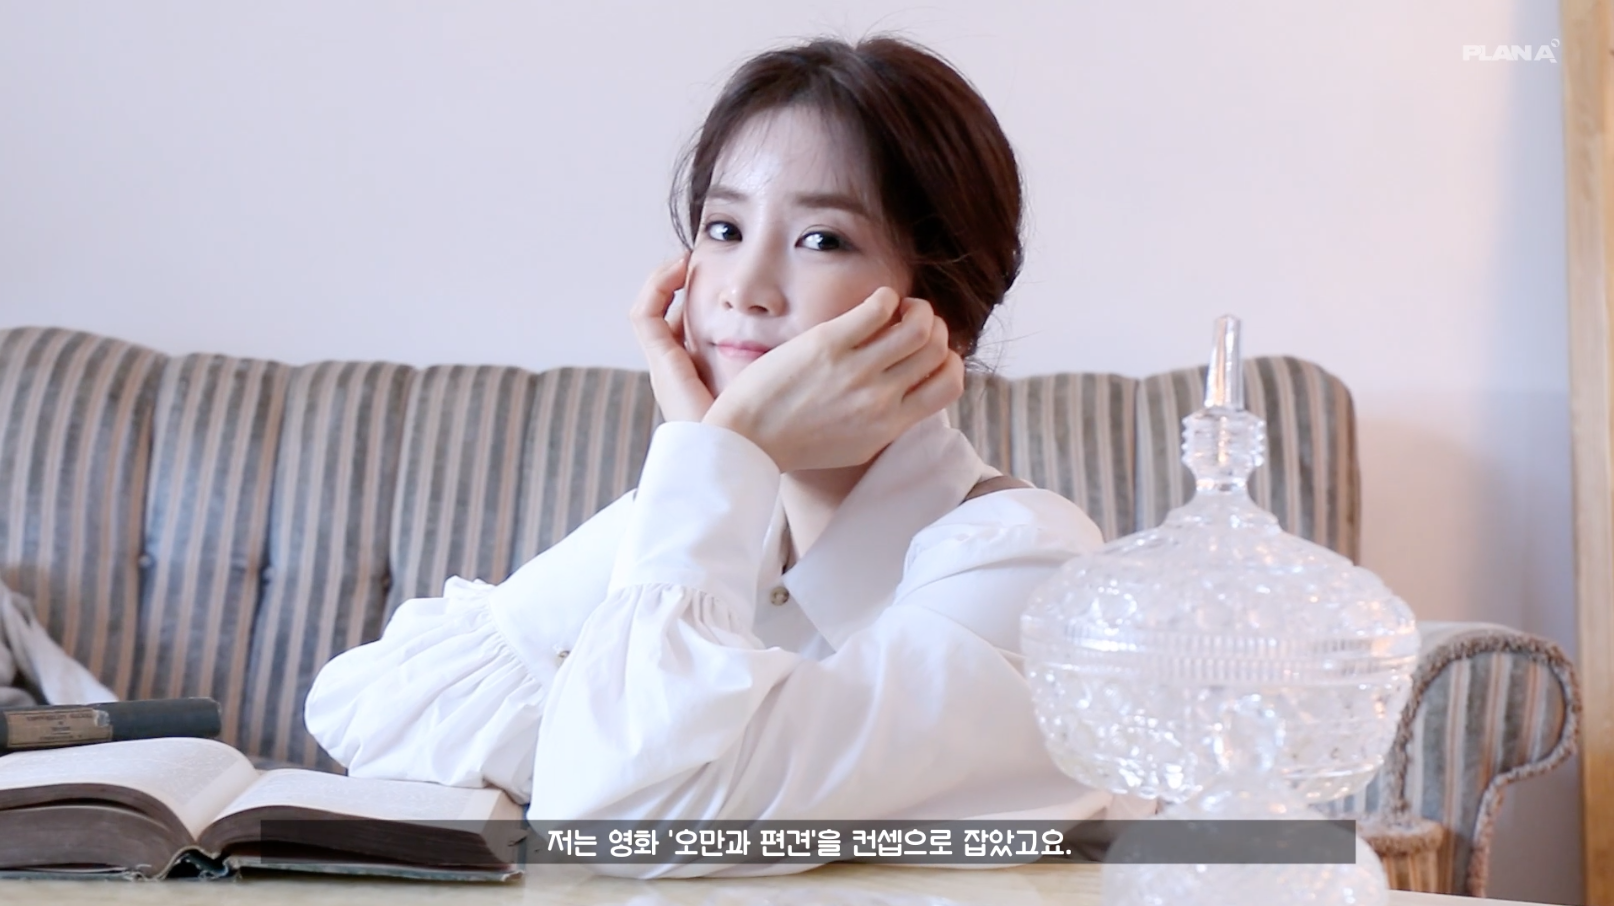 Apink Special Single '기적 같은 이야기' Jacket making film